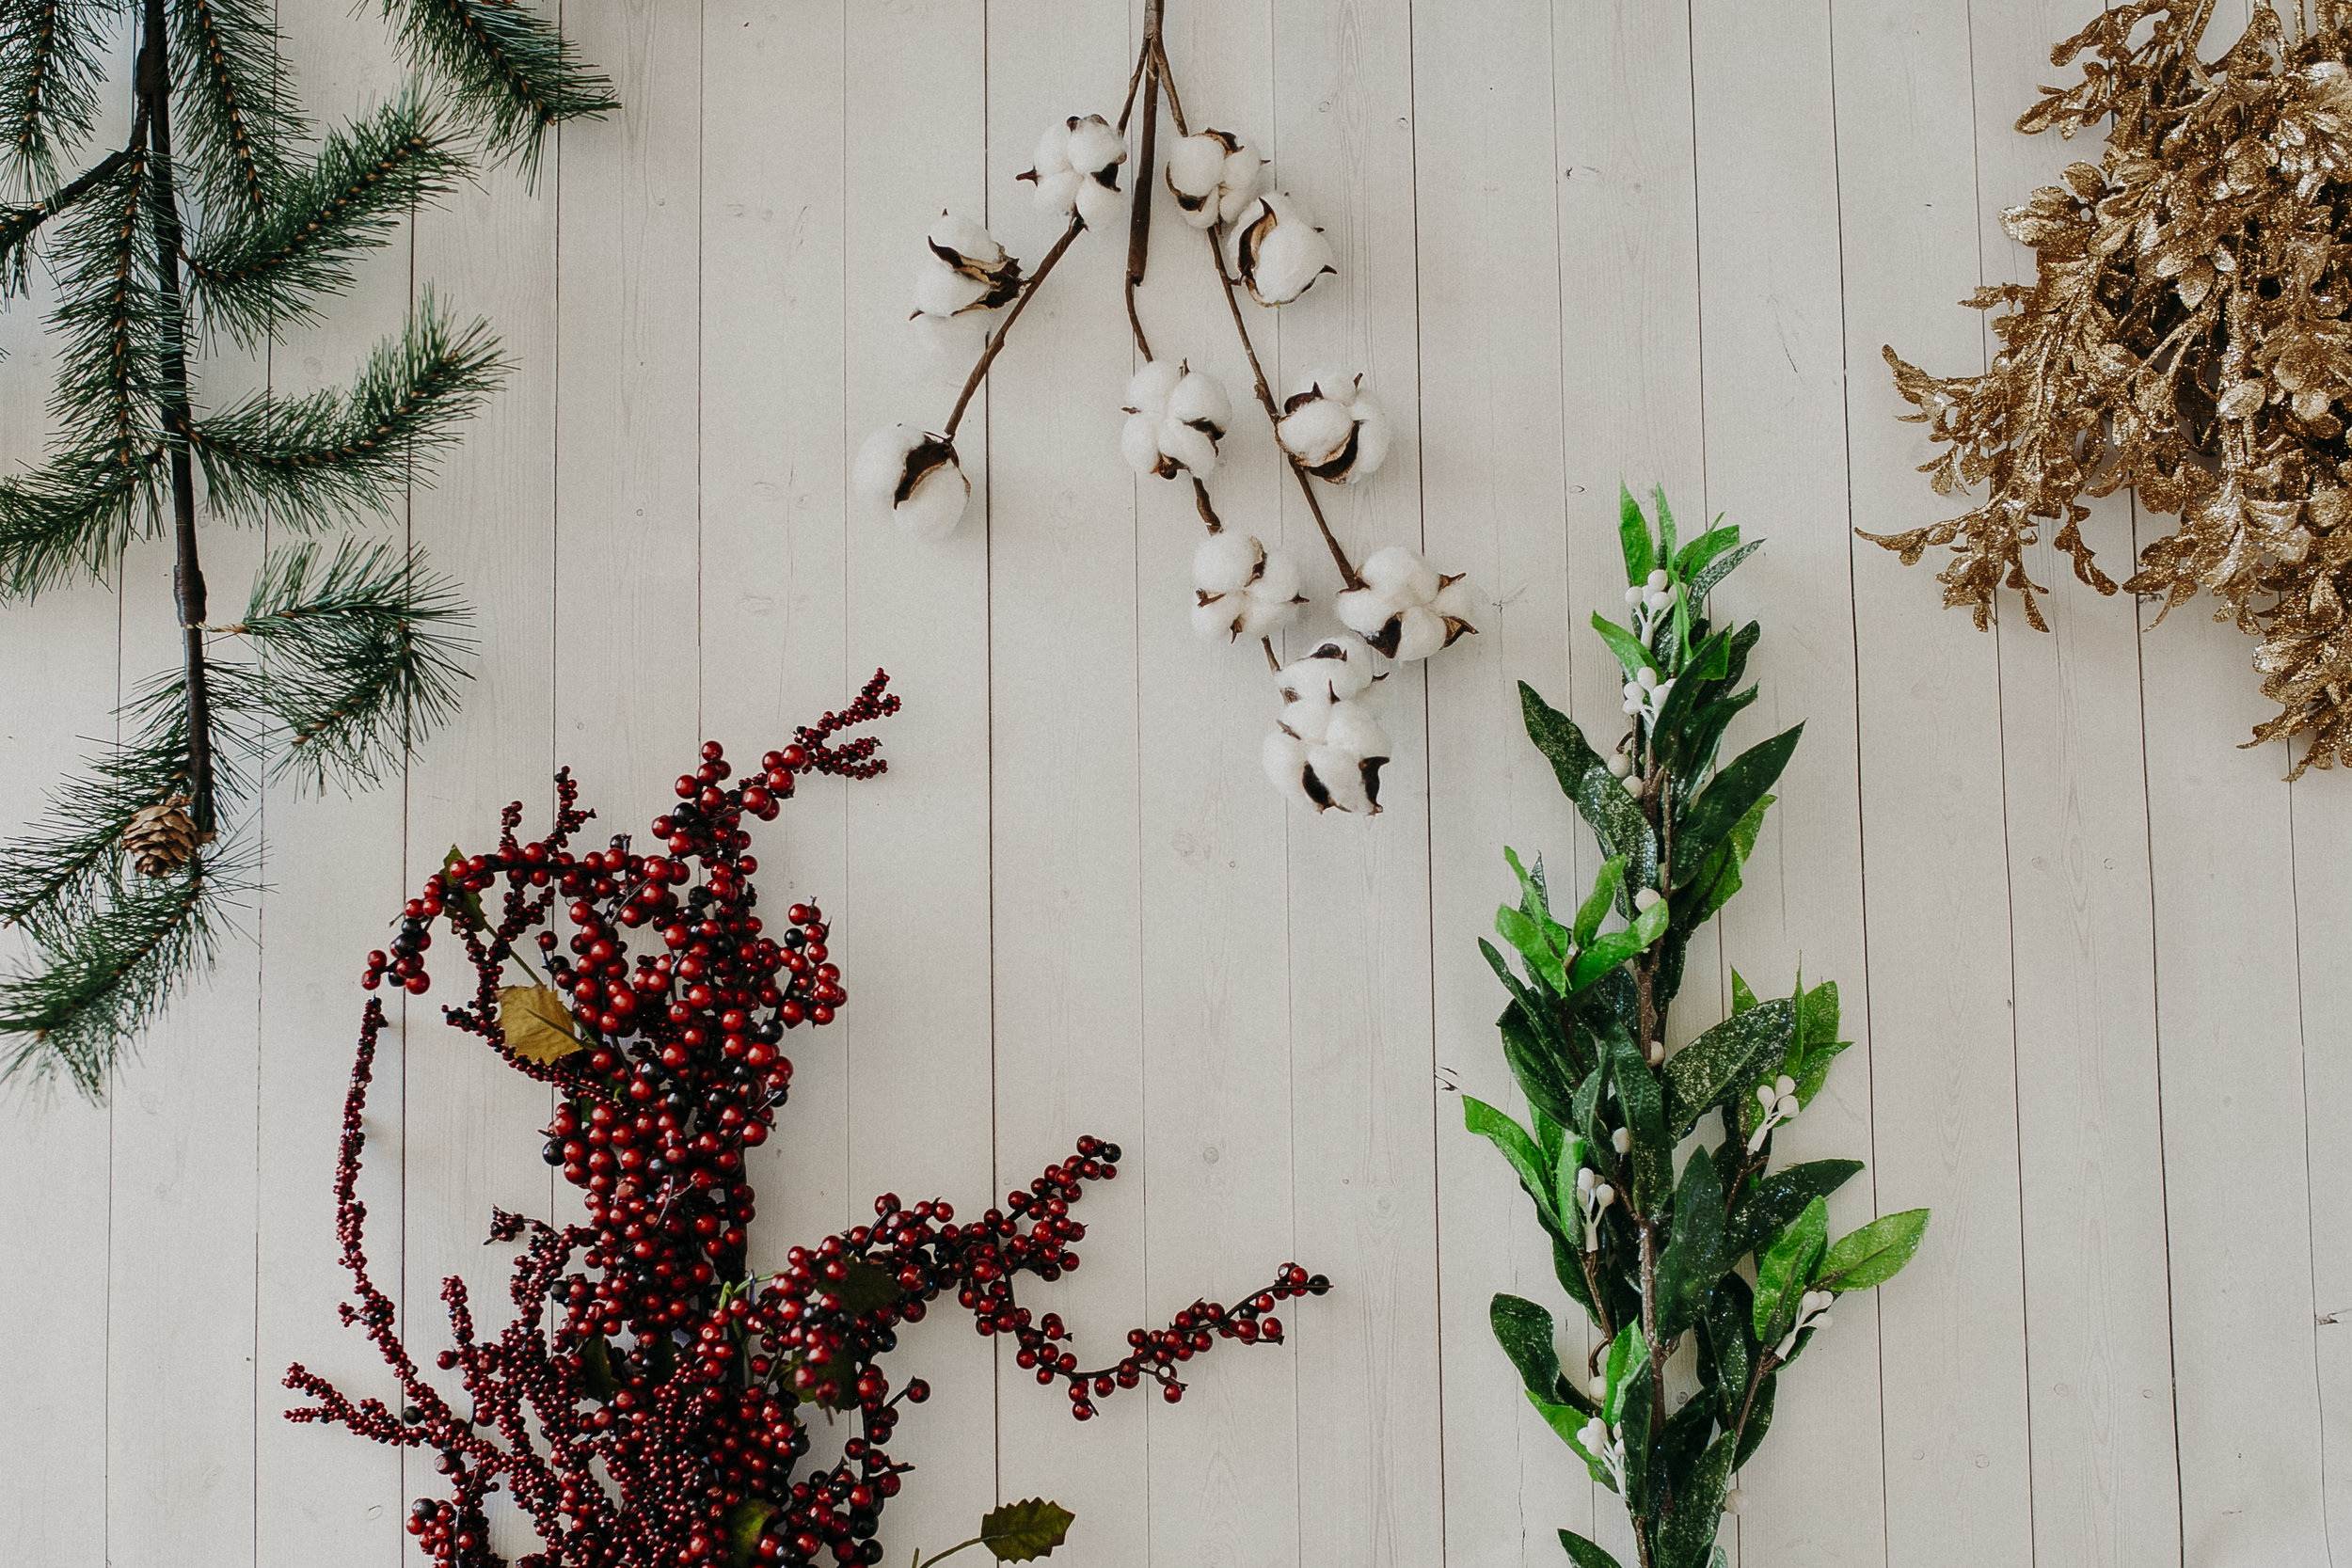 Step 1 -   Using your wire cutters, snip off the pieces of garland you wish to use in your winter sprig